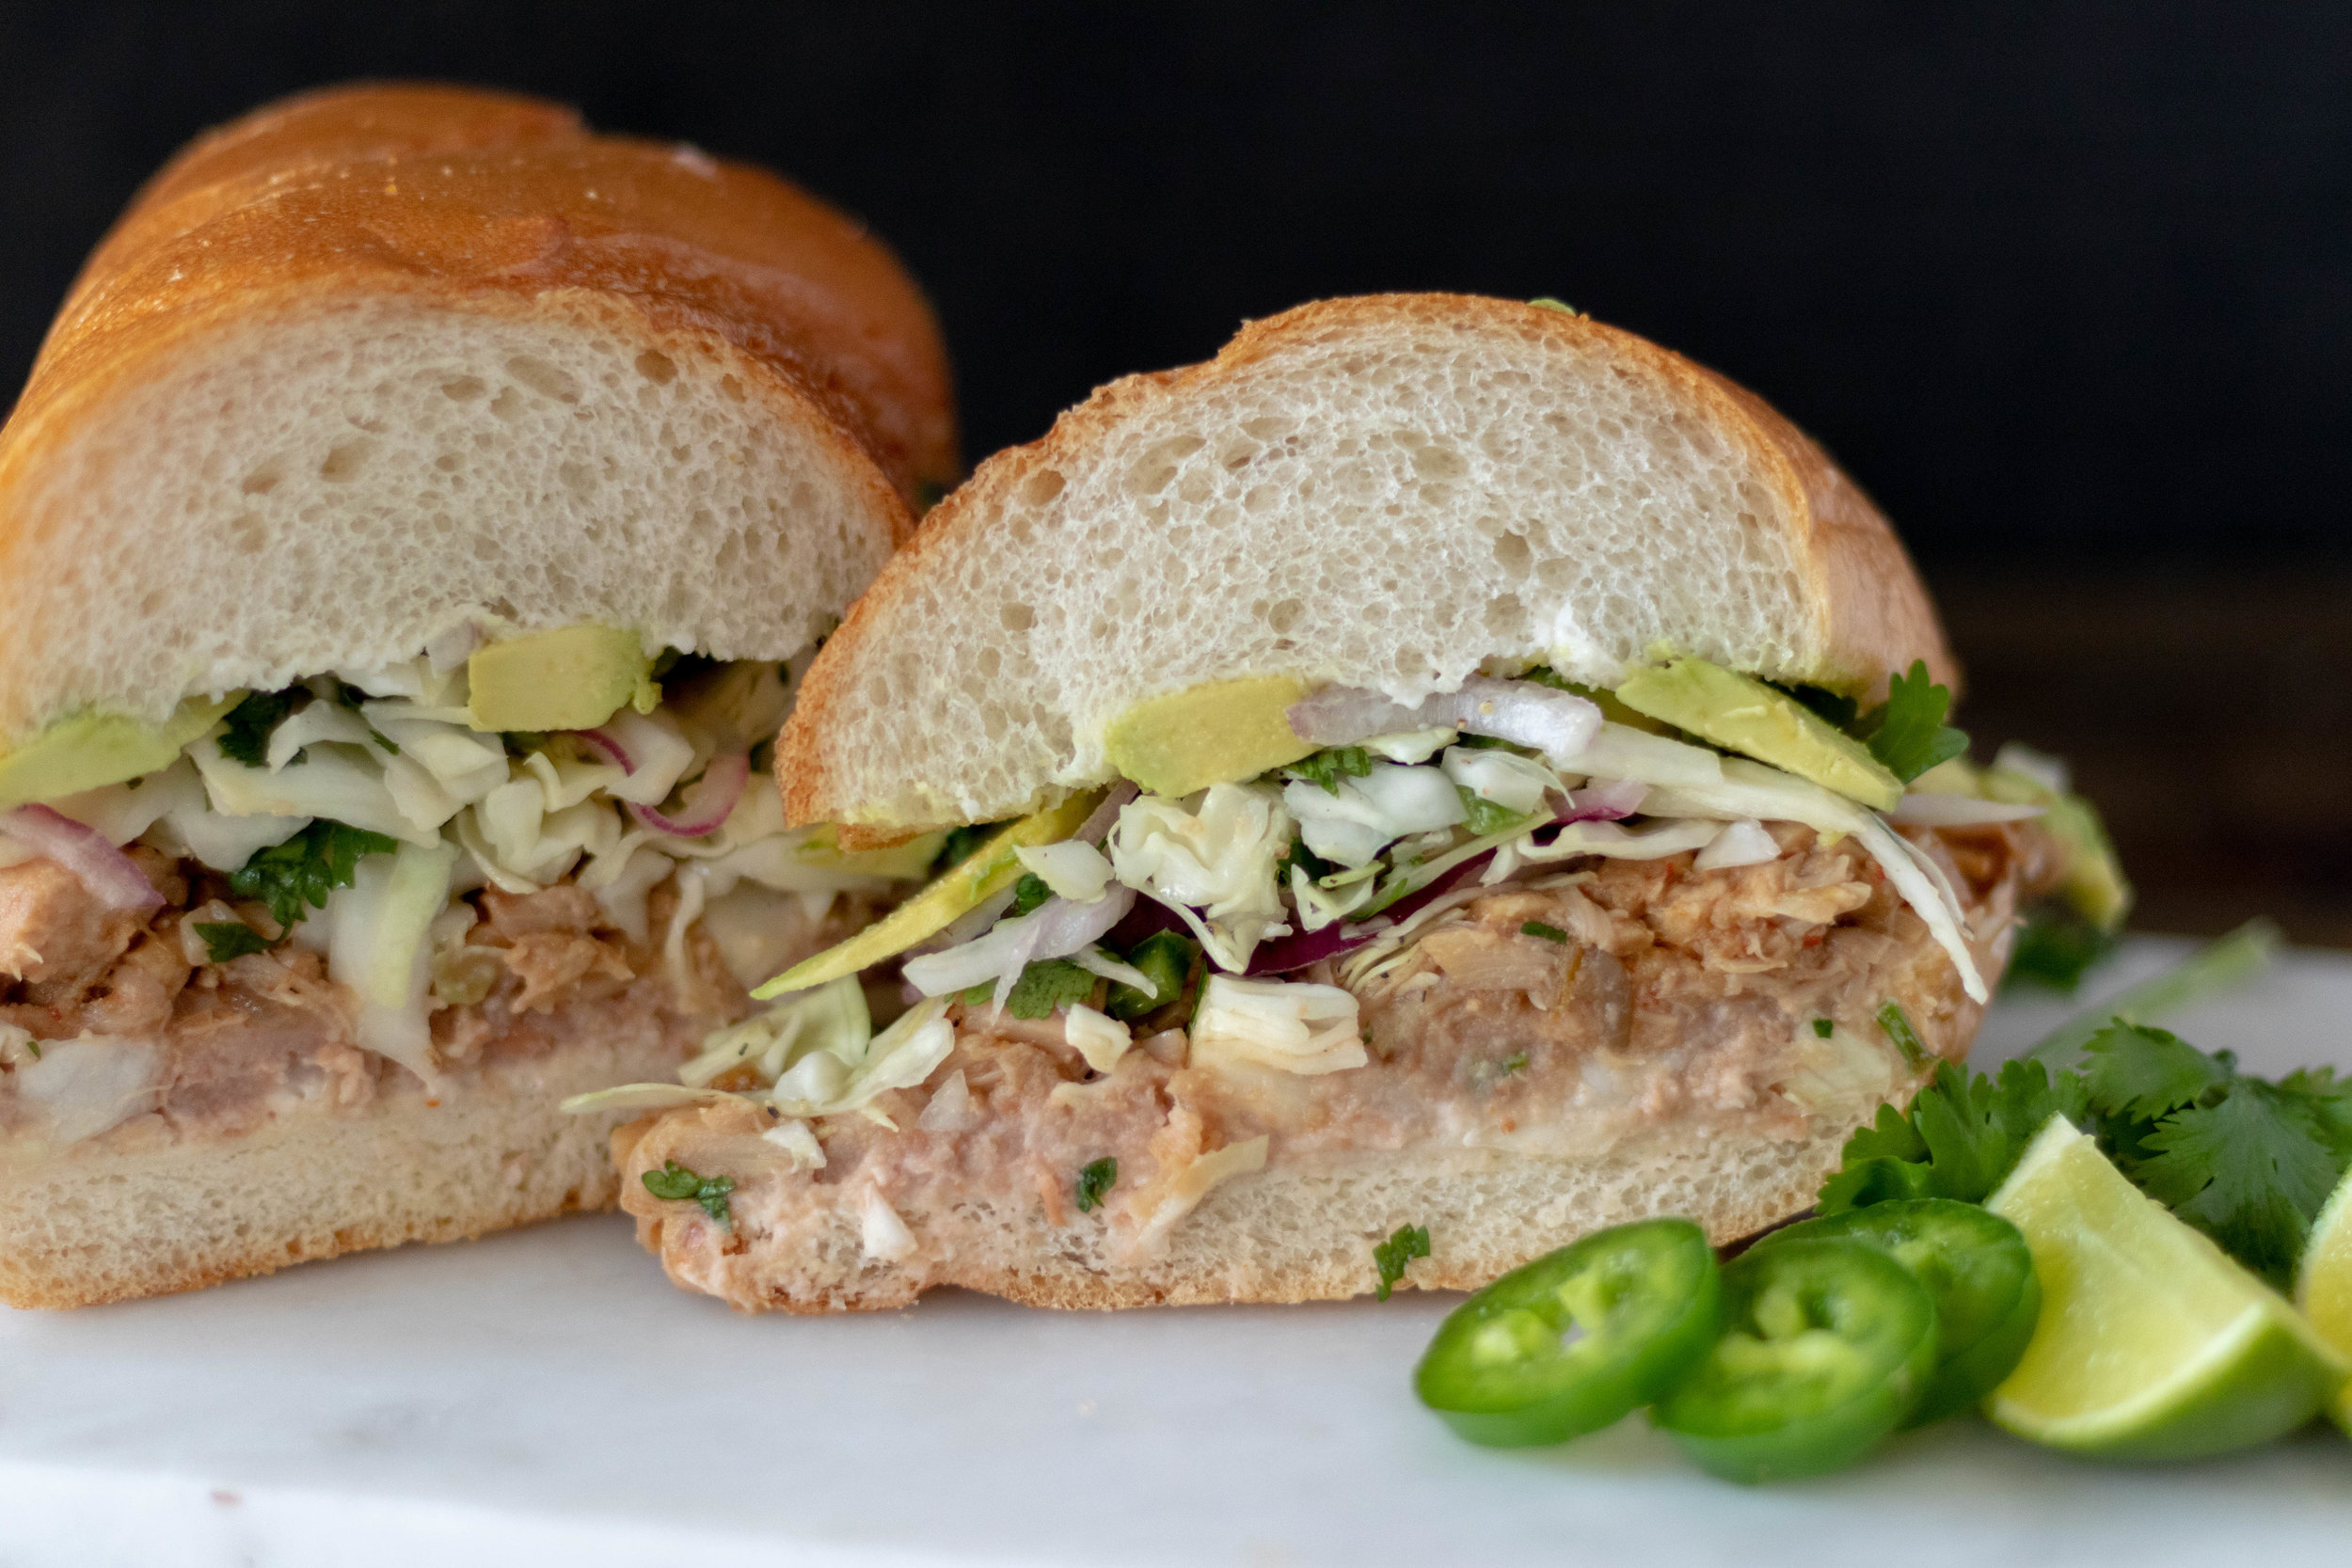 Pulled Jackfruit Mexican Torta cut in half.